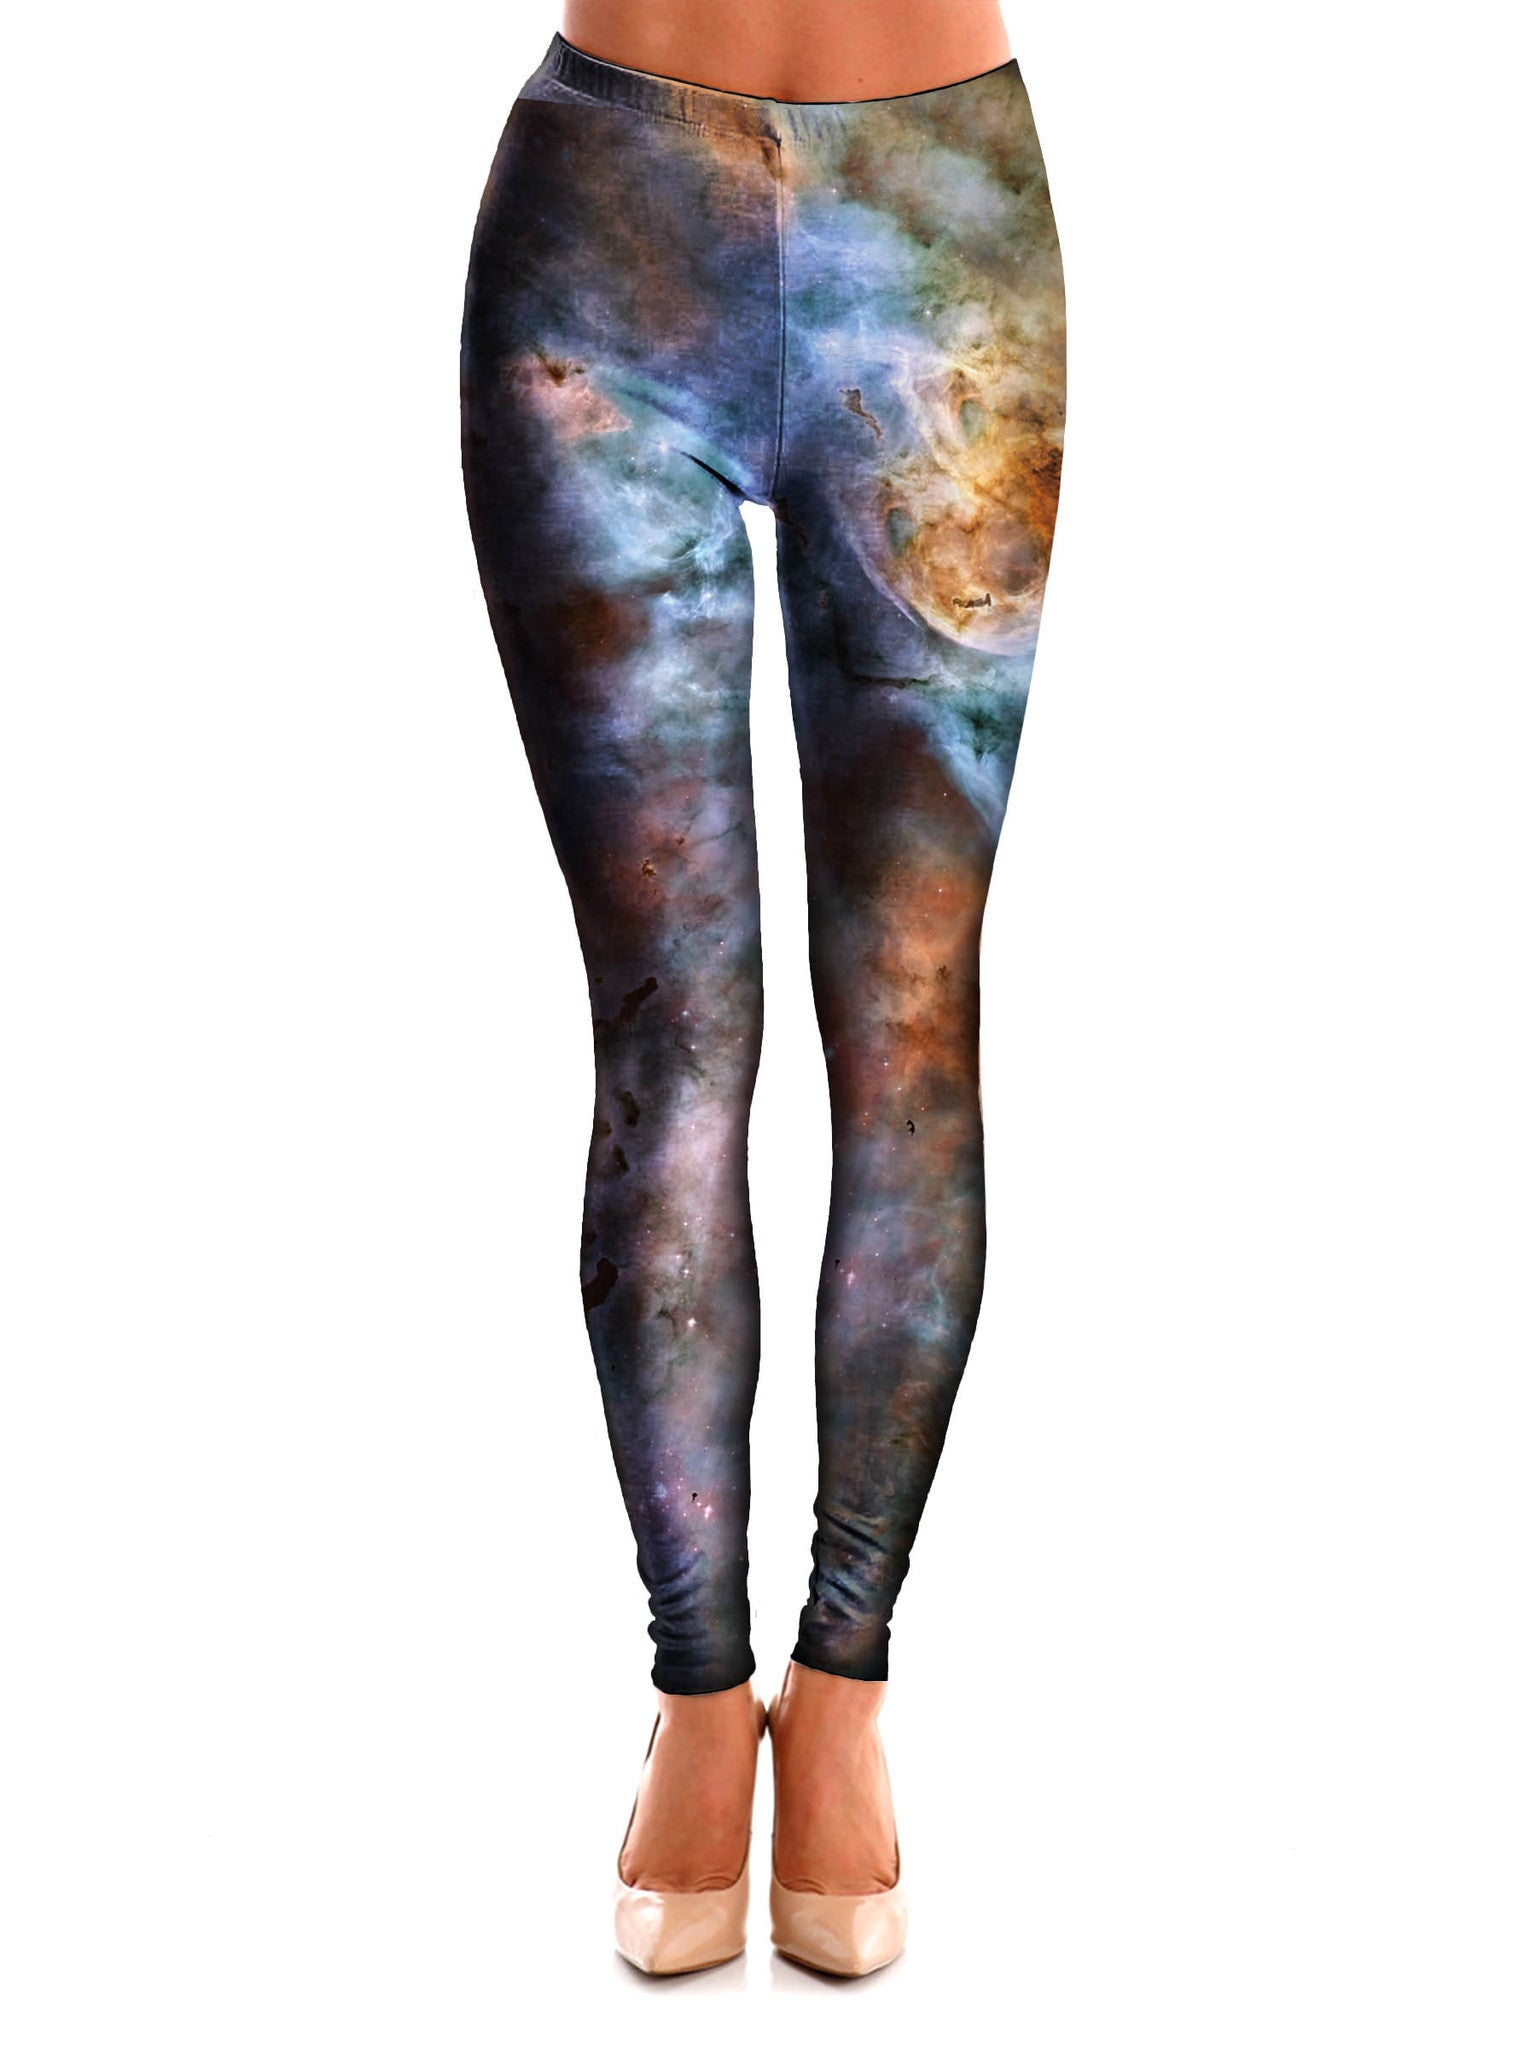 Abstracted Nebula Space Leggings - GratefullyDyed - 1